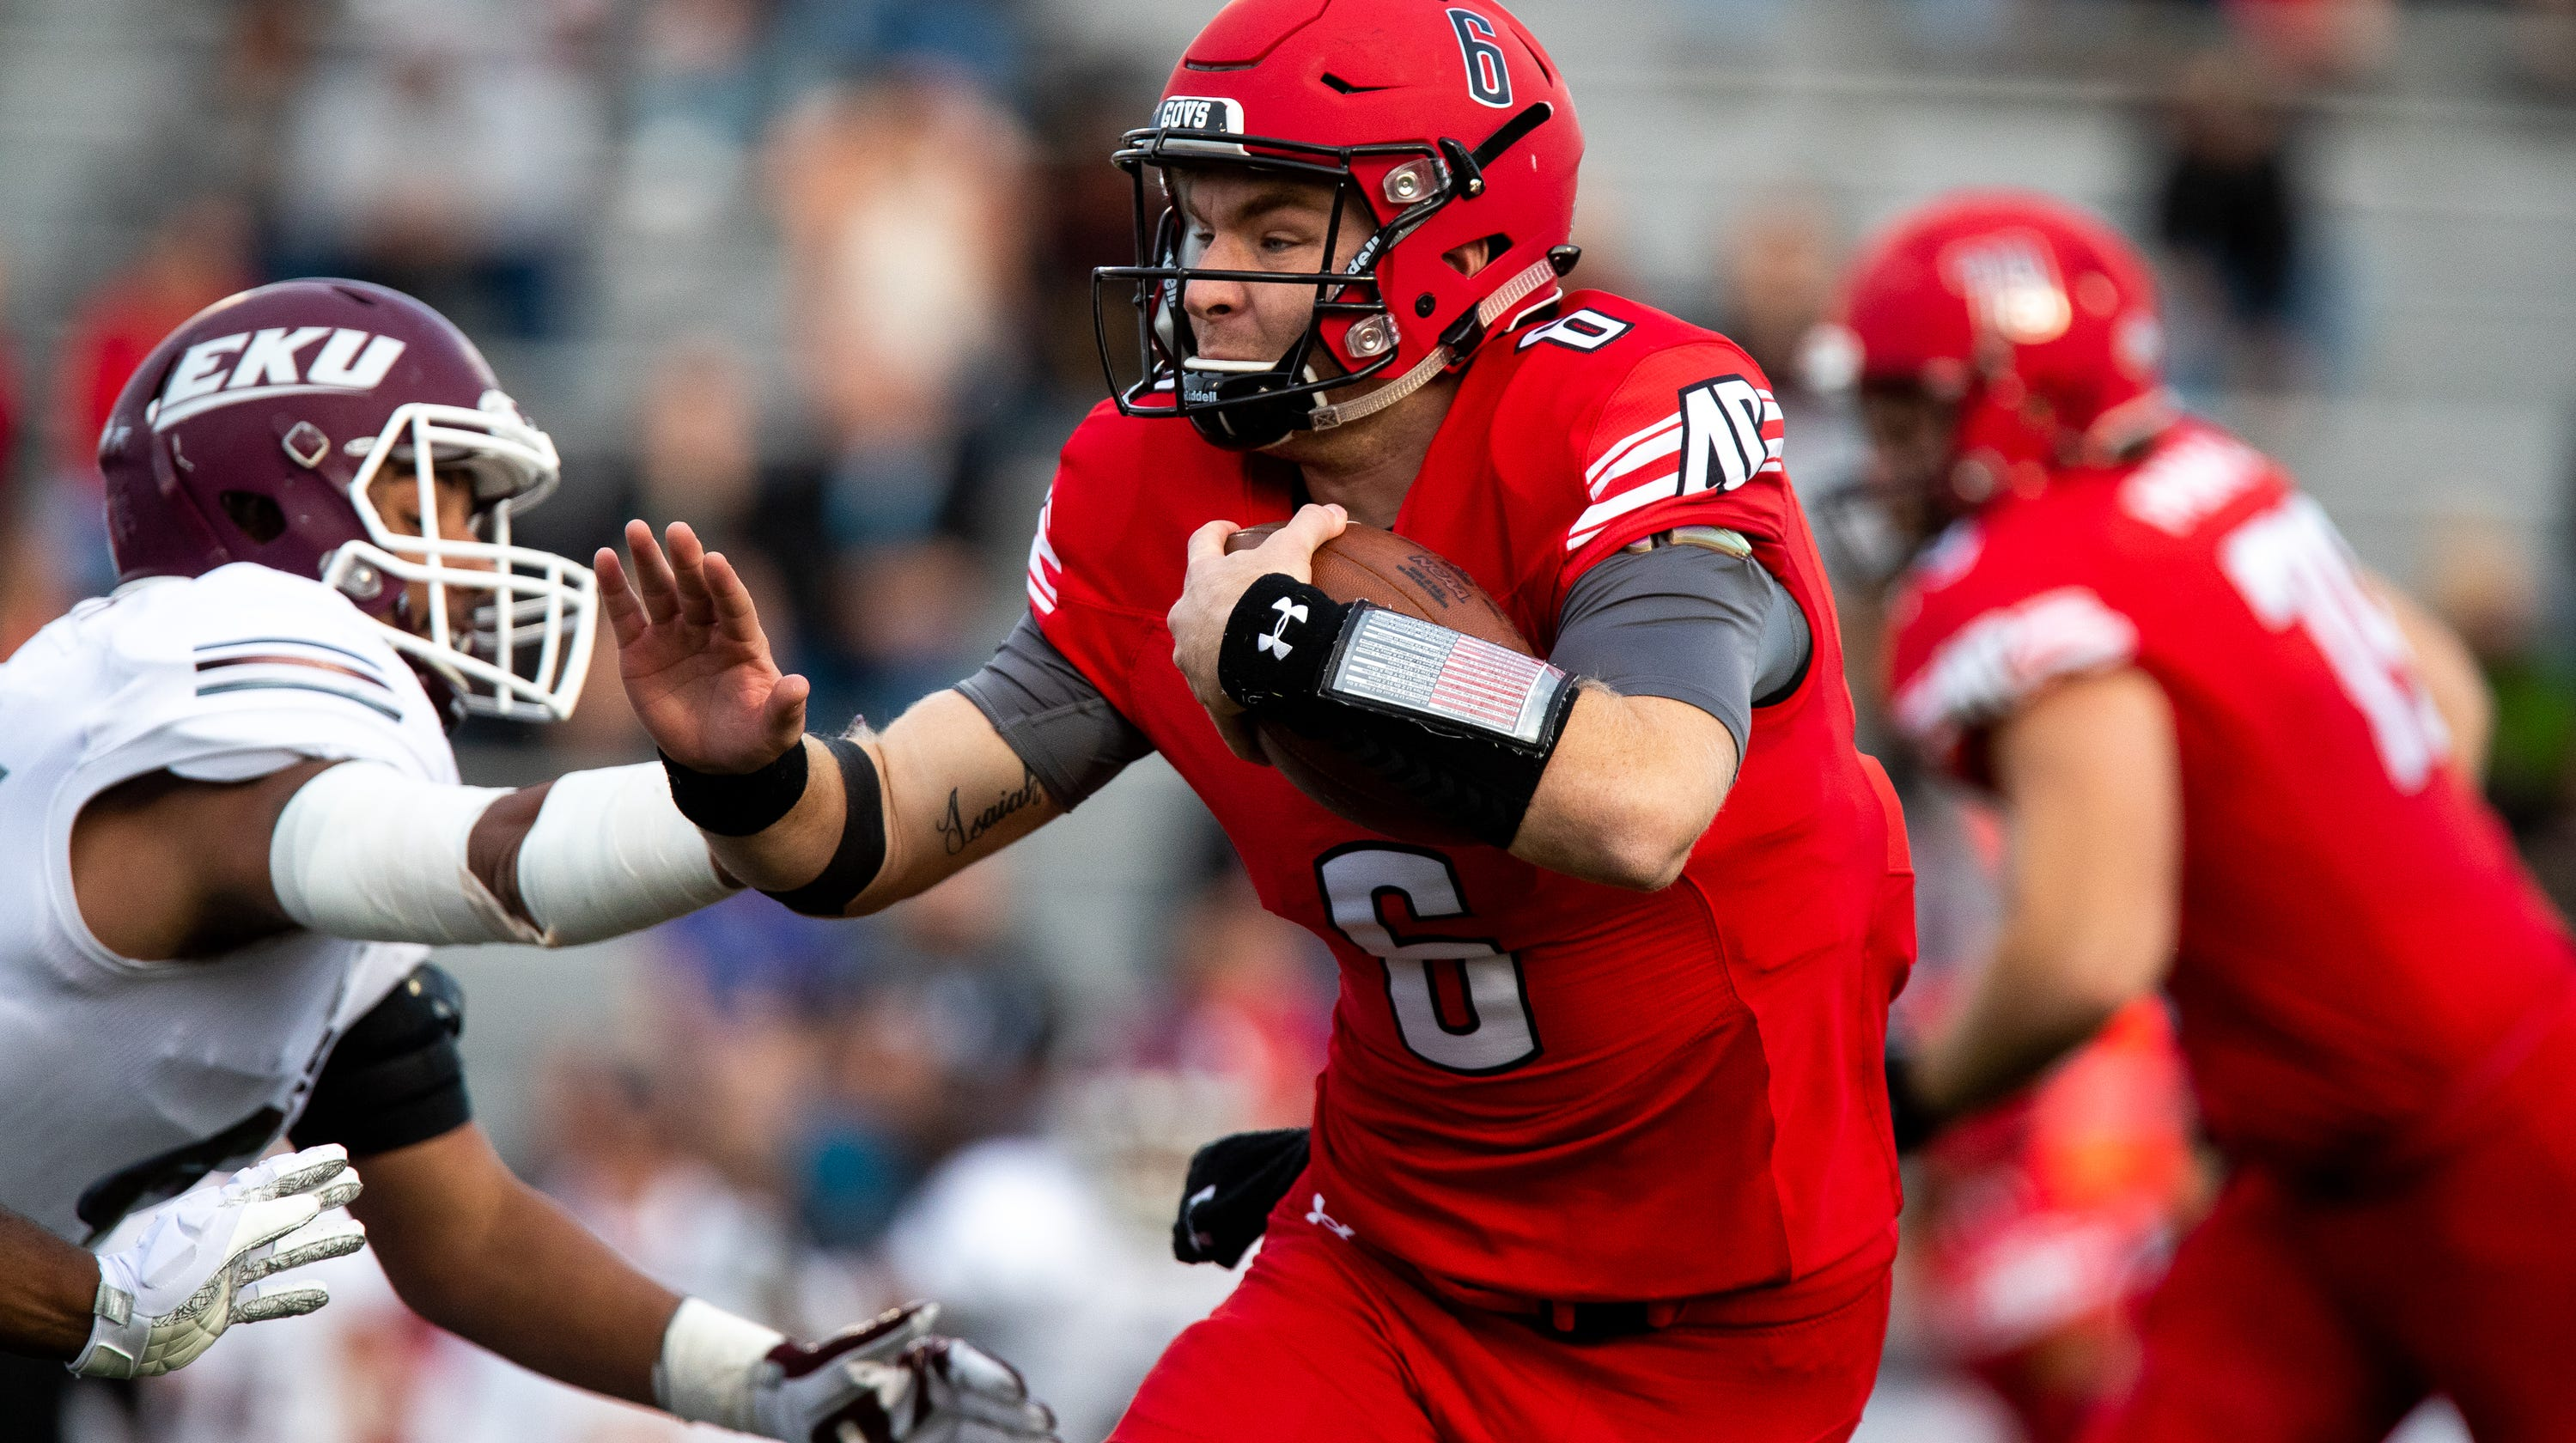 Austin Peay Football Schedule 2019 Austin Peay announces spring football schedule for 2019